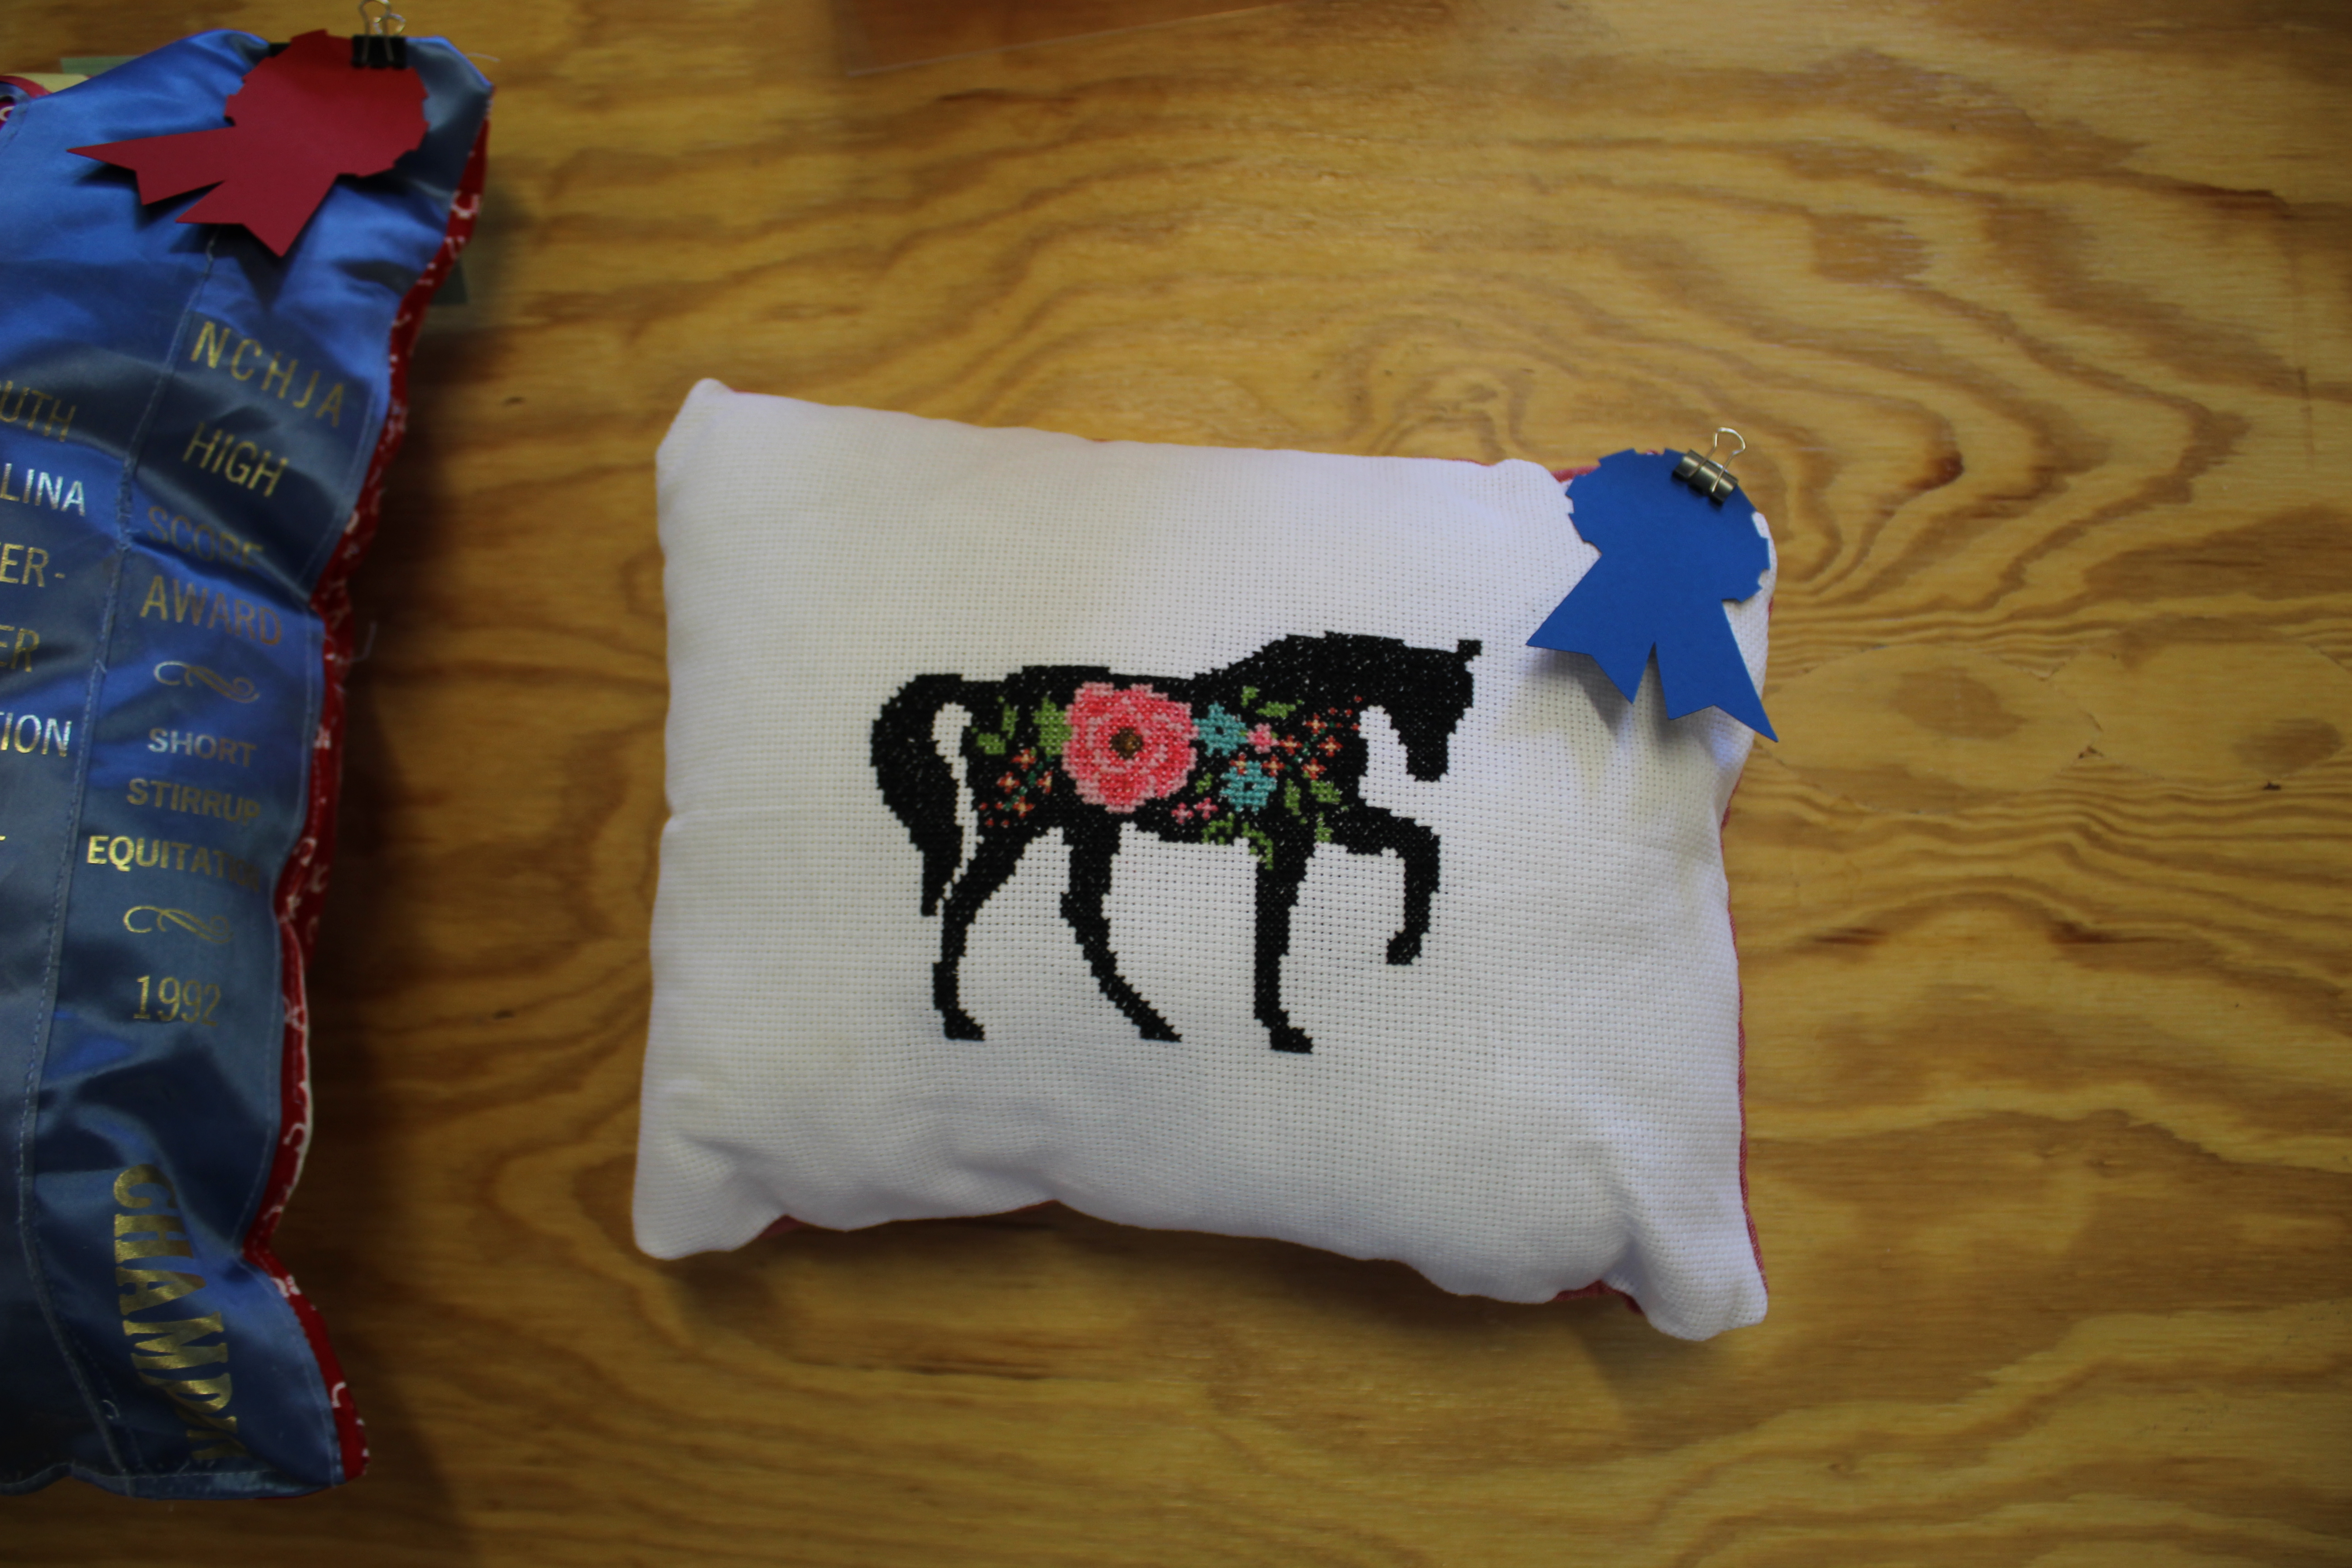 Stitched horse on a pillow